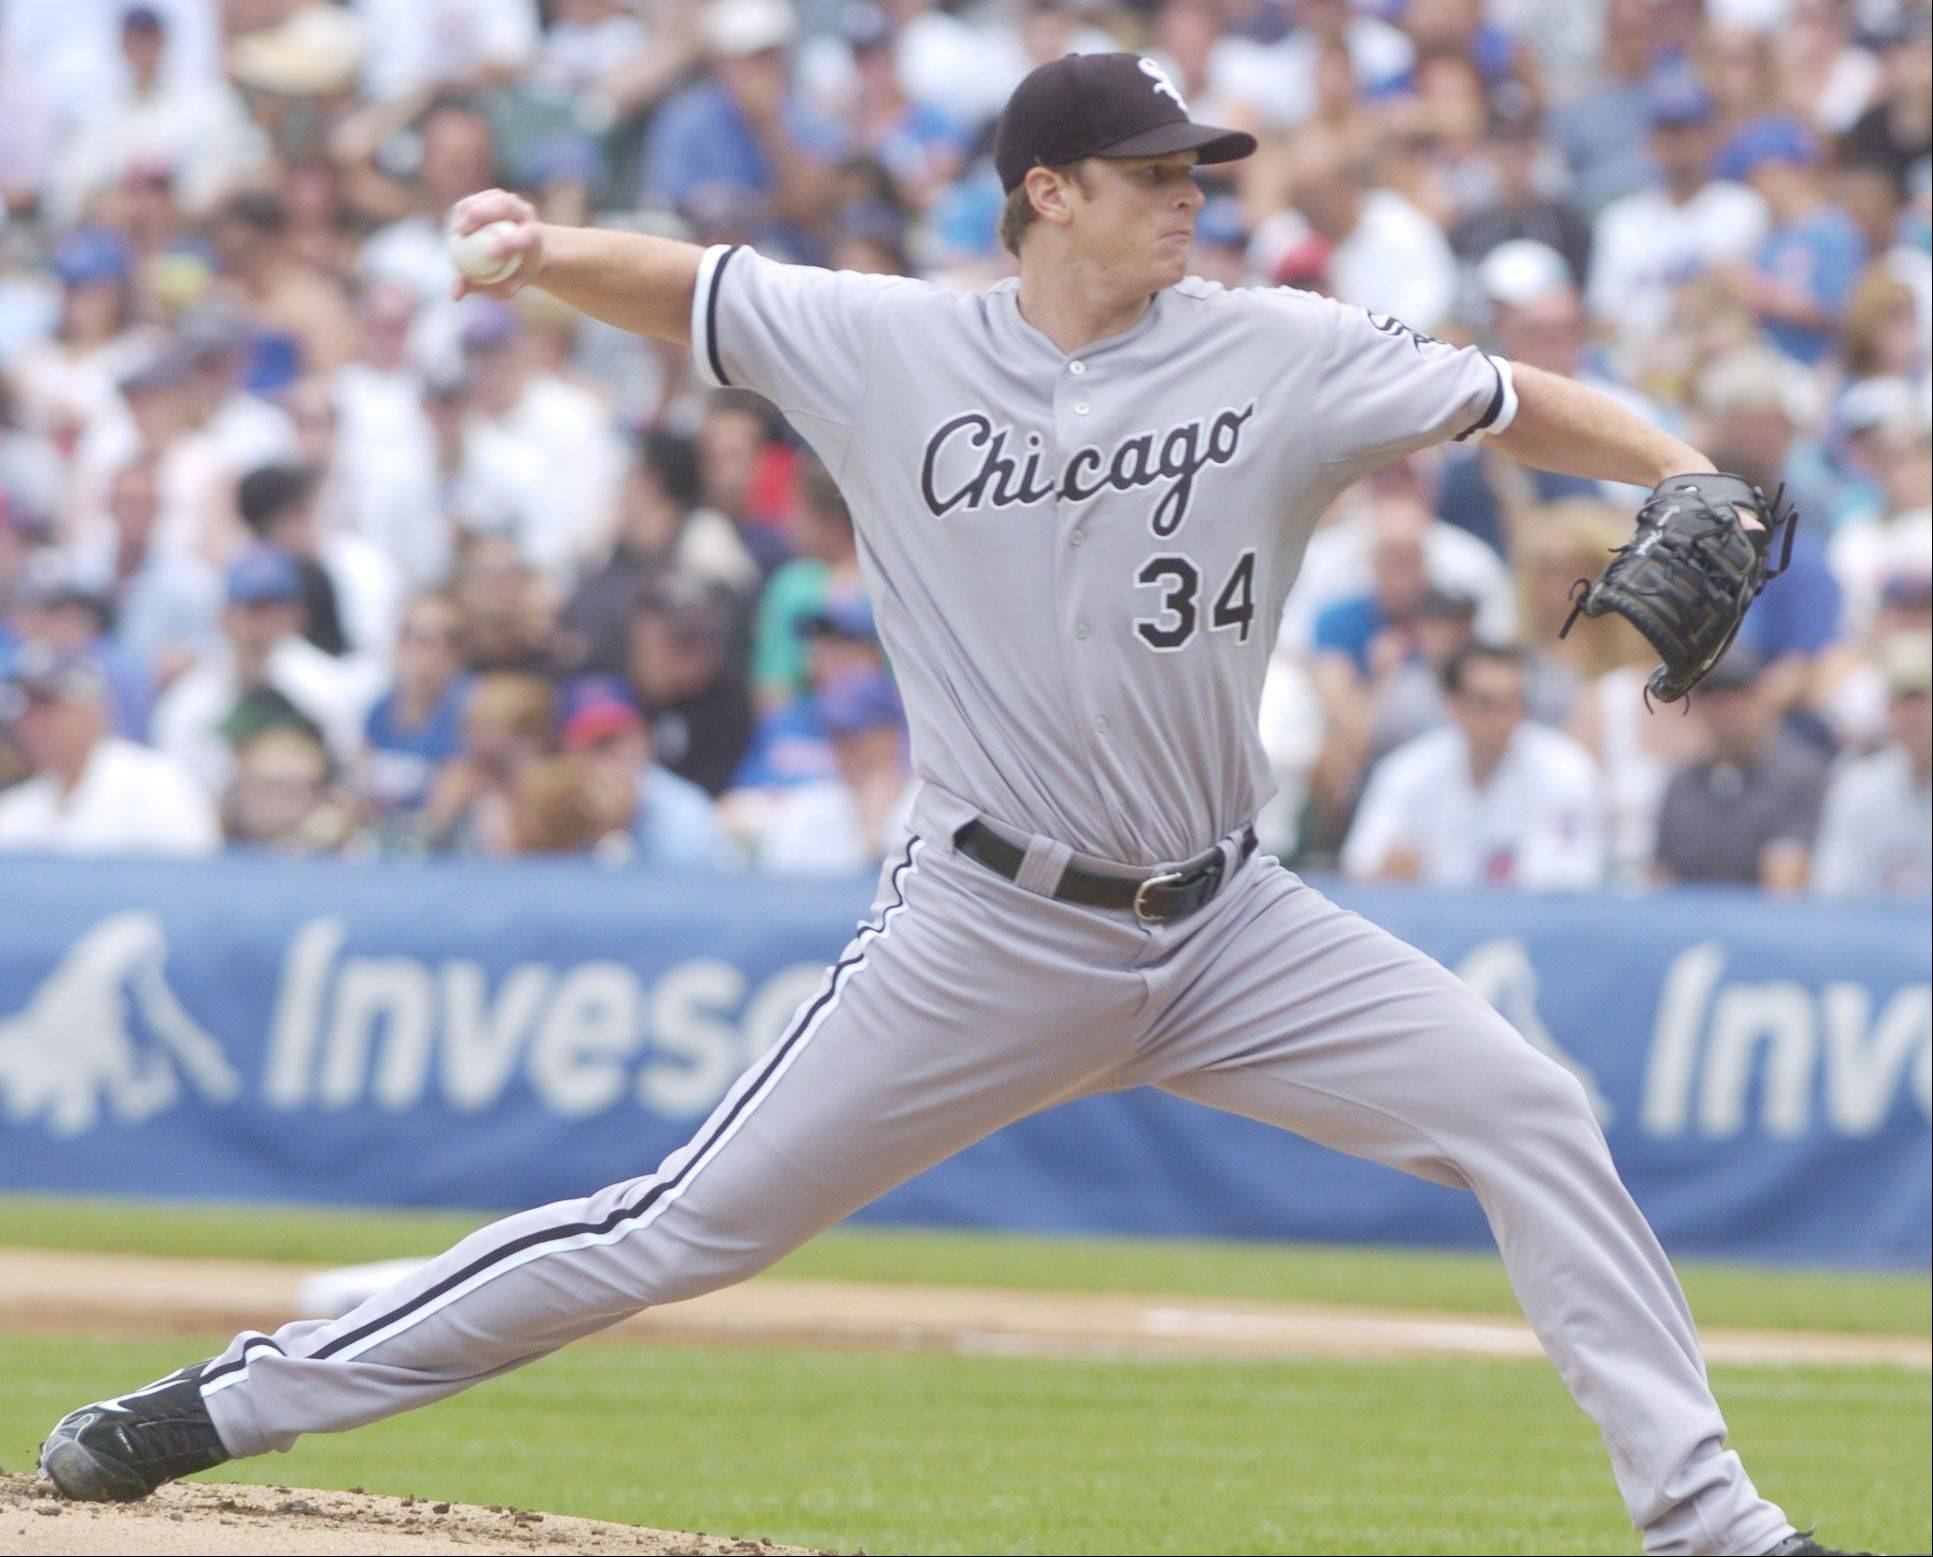 White Sox starter Gavin Floyd delives against the Cubs during Sunday's game at Wrigley Field.